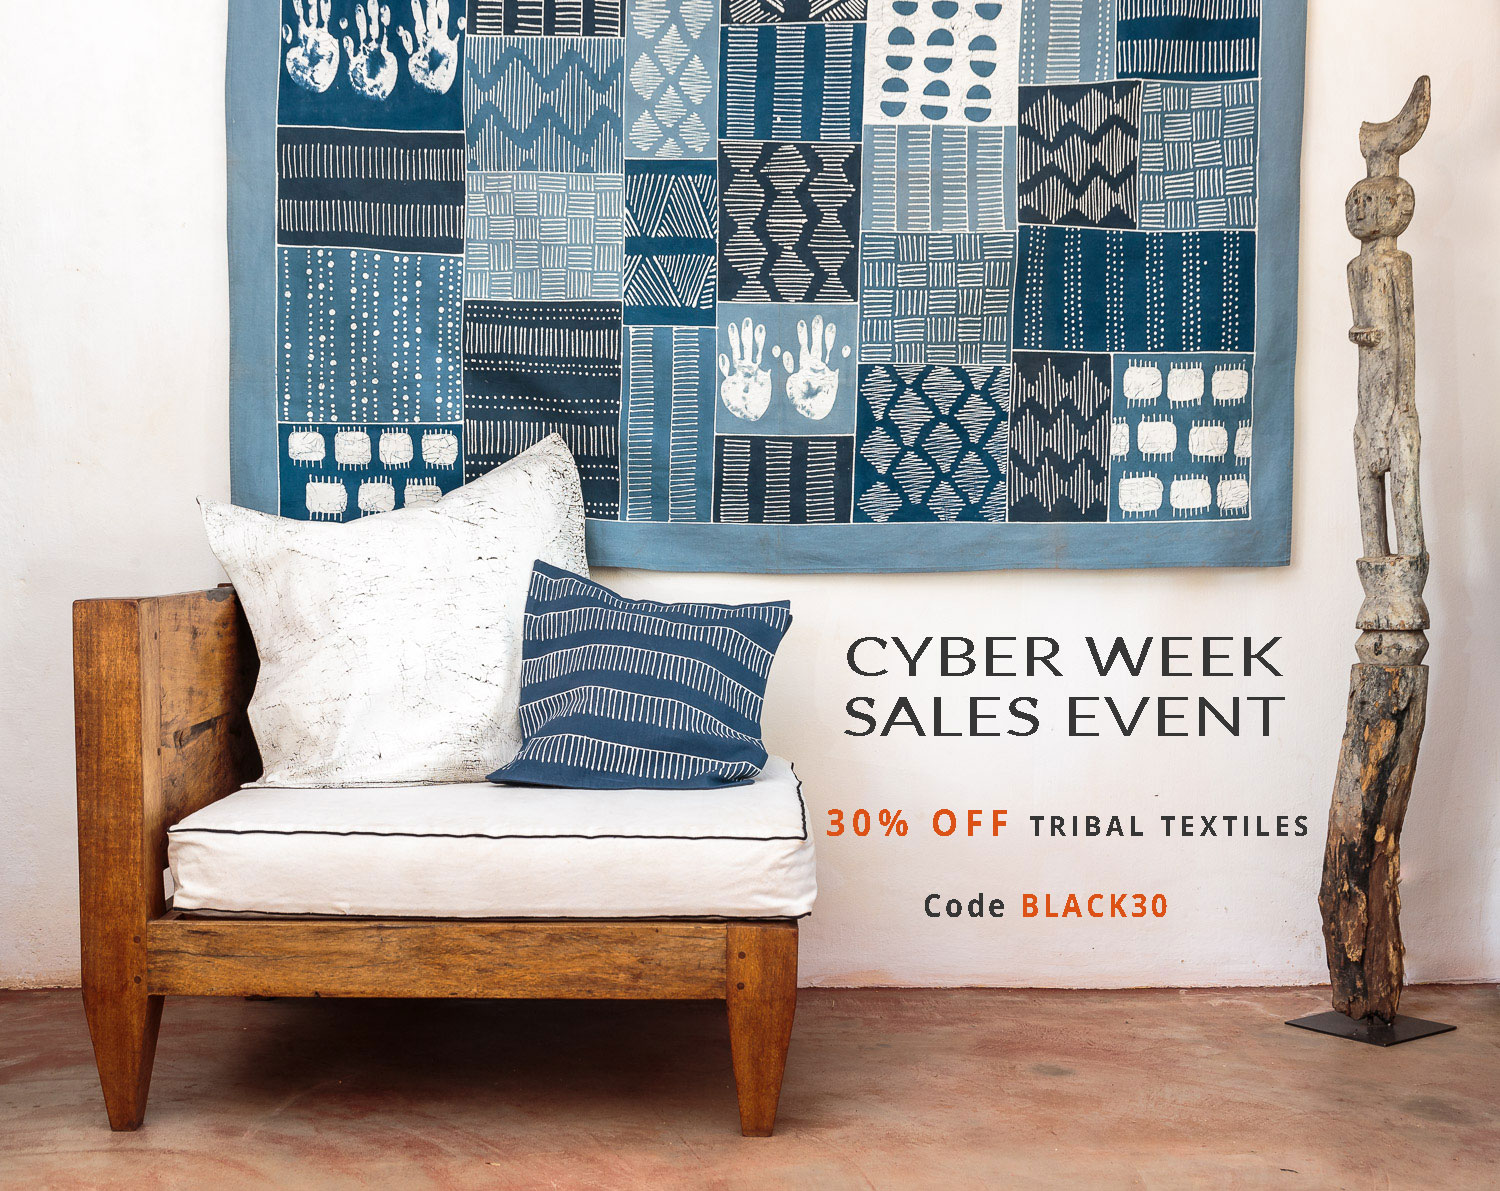 Black Friday Early Access: 30% off Tribal Textiles